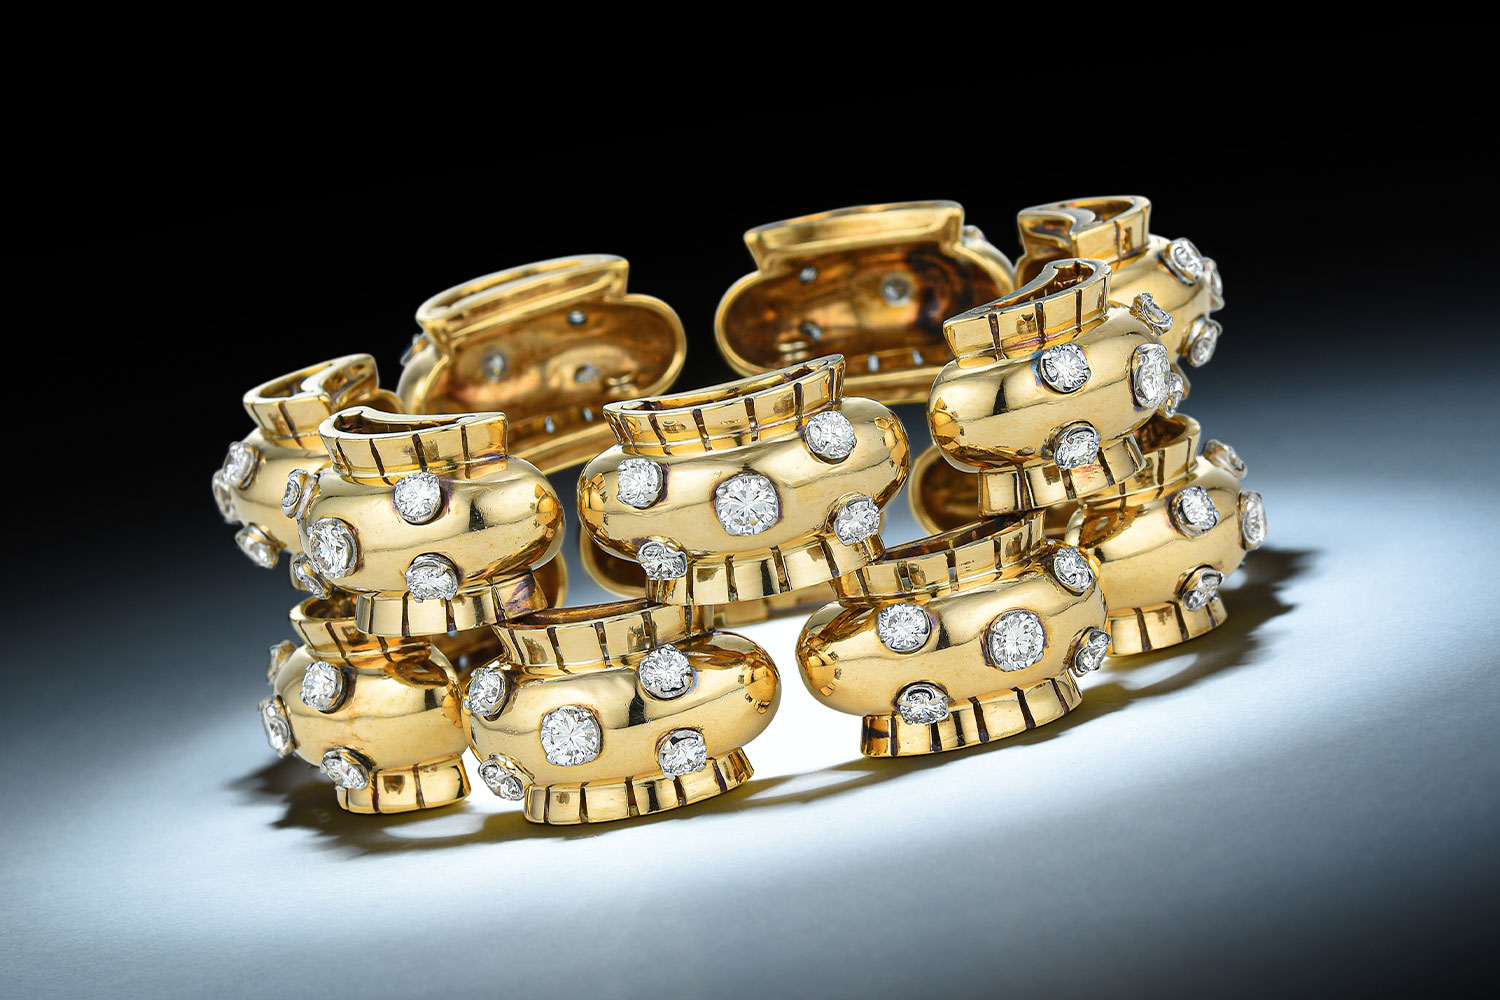 2019DEC Van Cleef & Arpels Retro Gold Diamond Bracelet